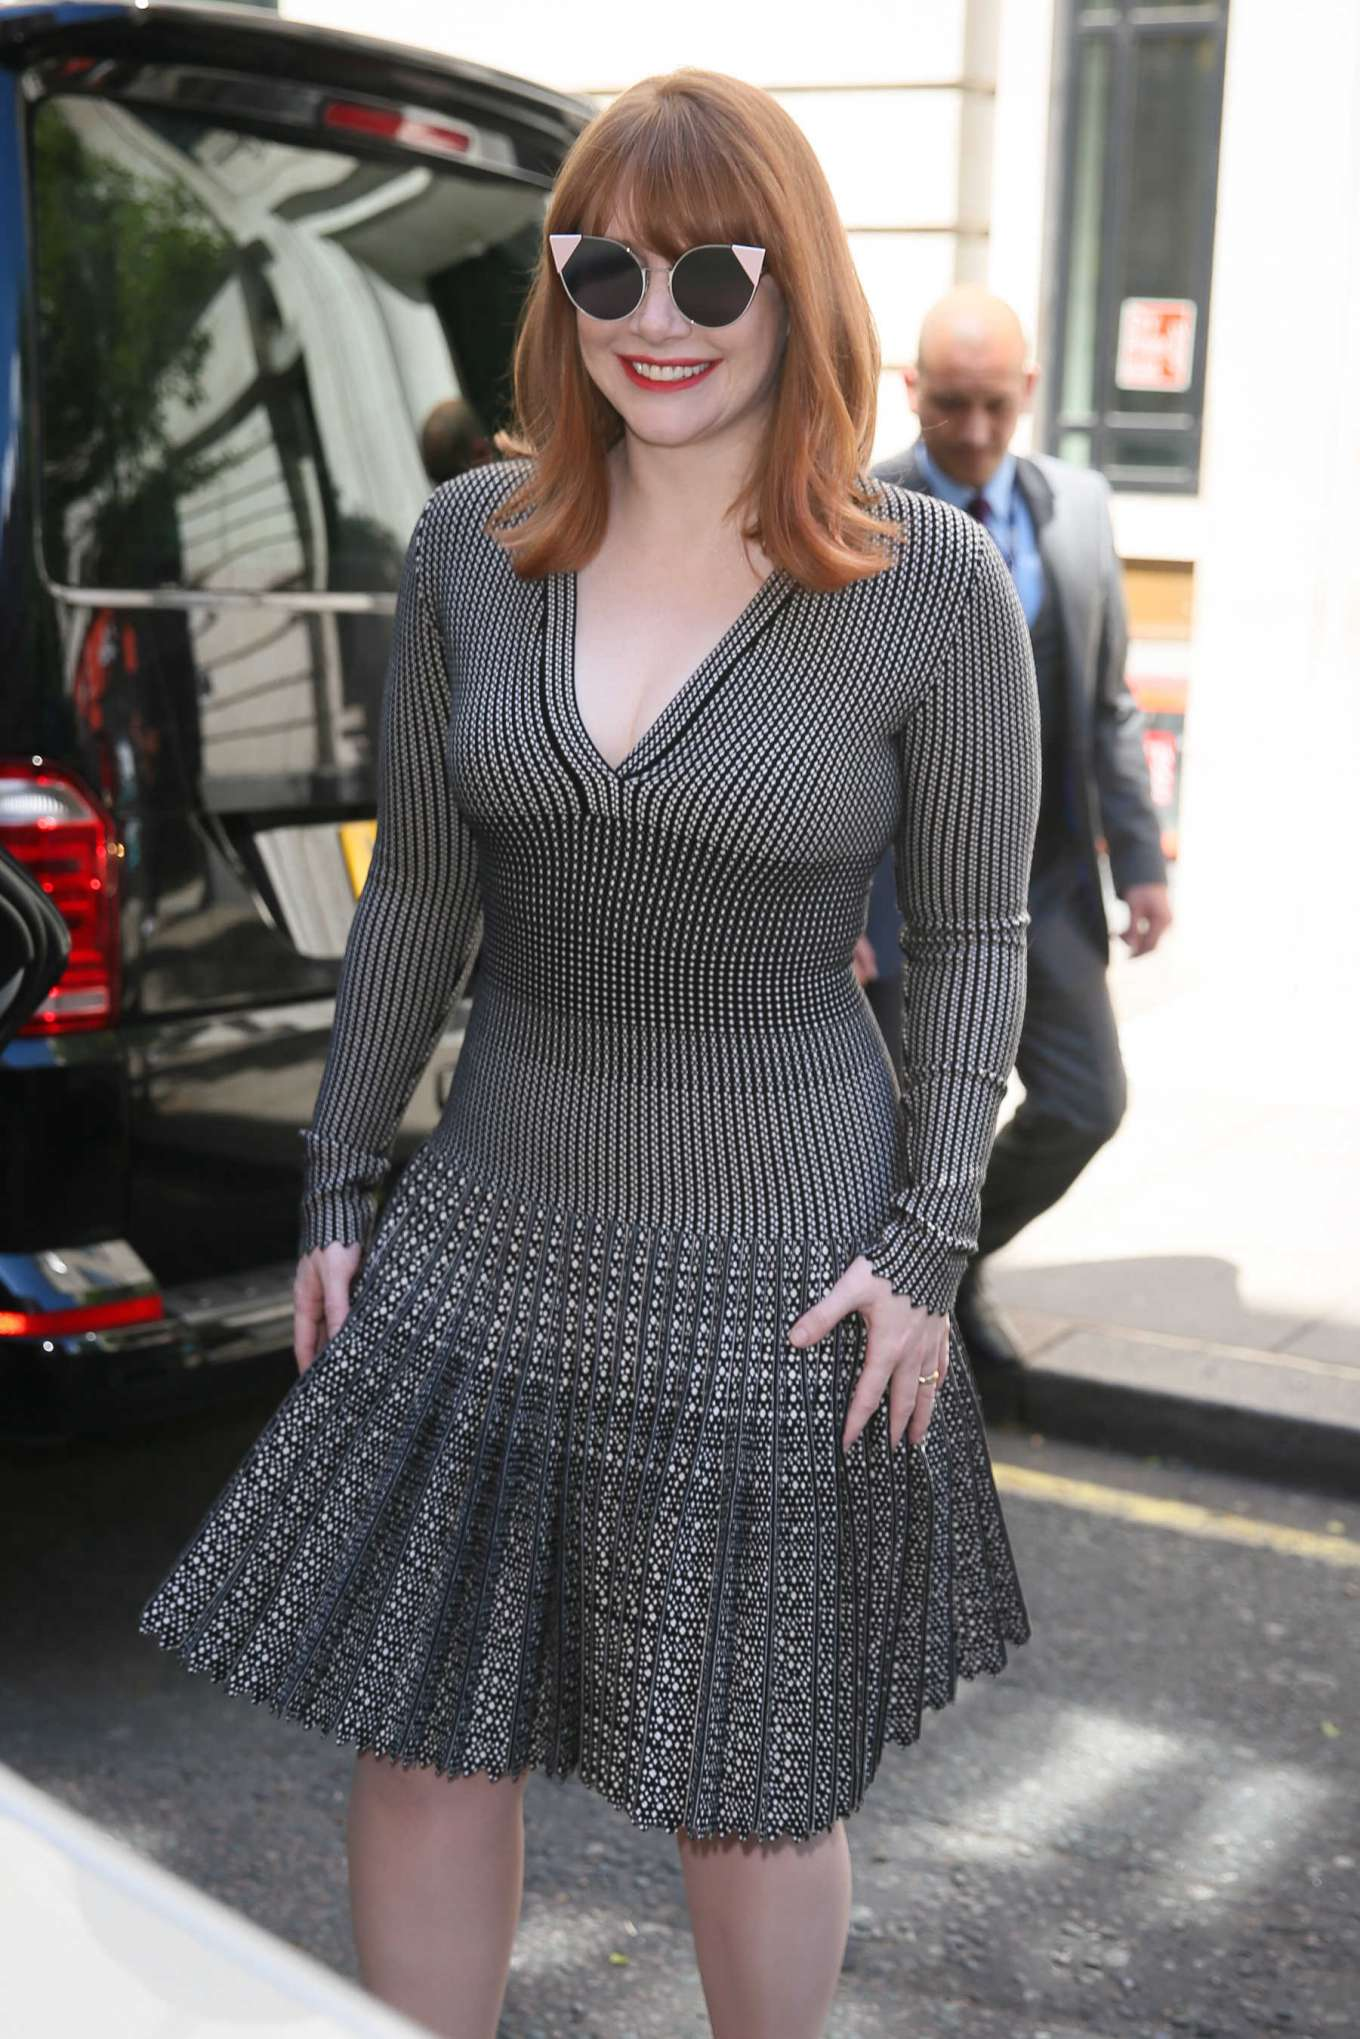 Bryce Dallas Howard 2019 : Bryce Dallas Howard: Out and about in London-15